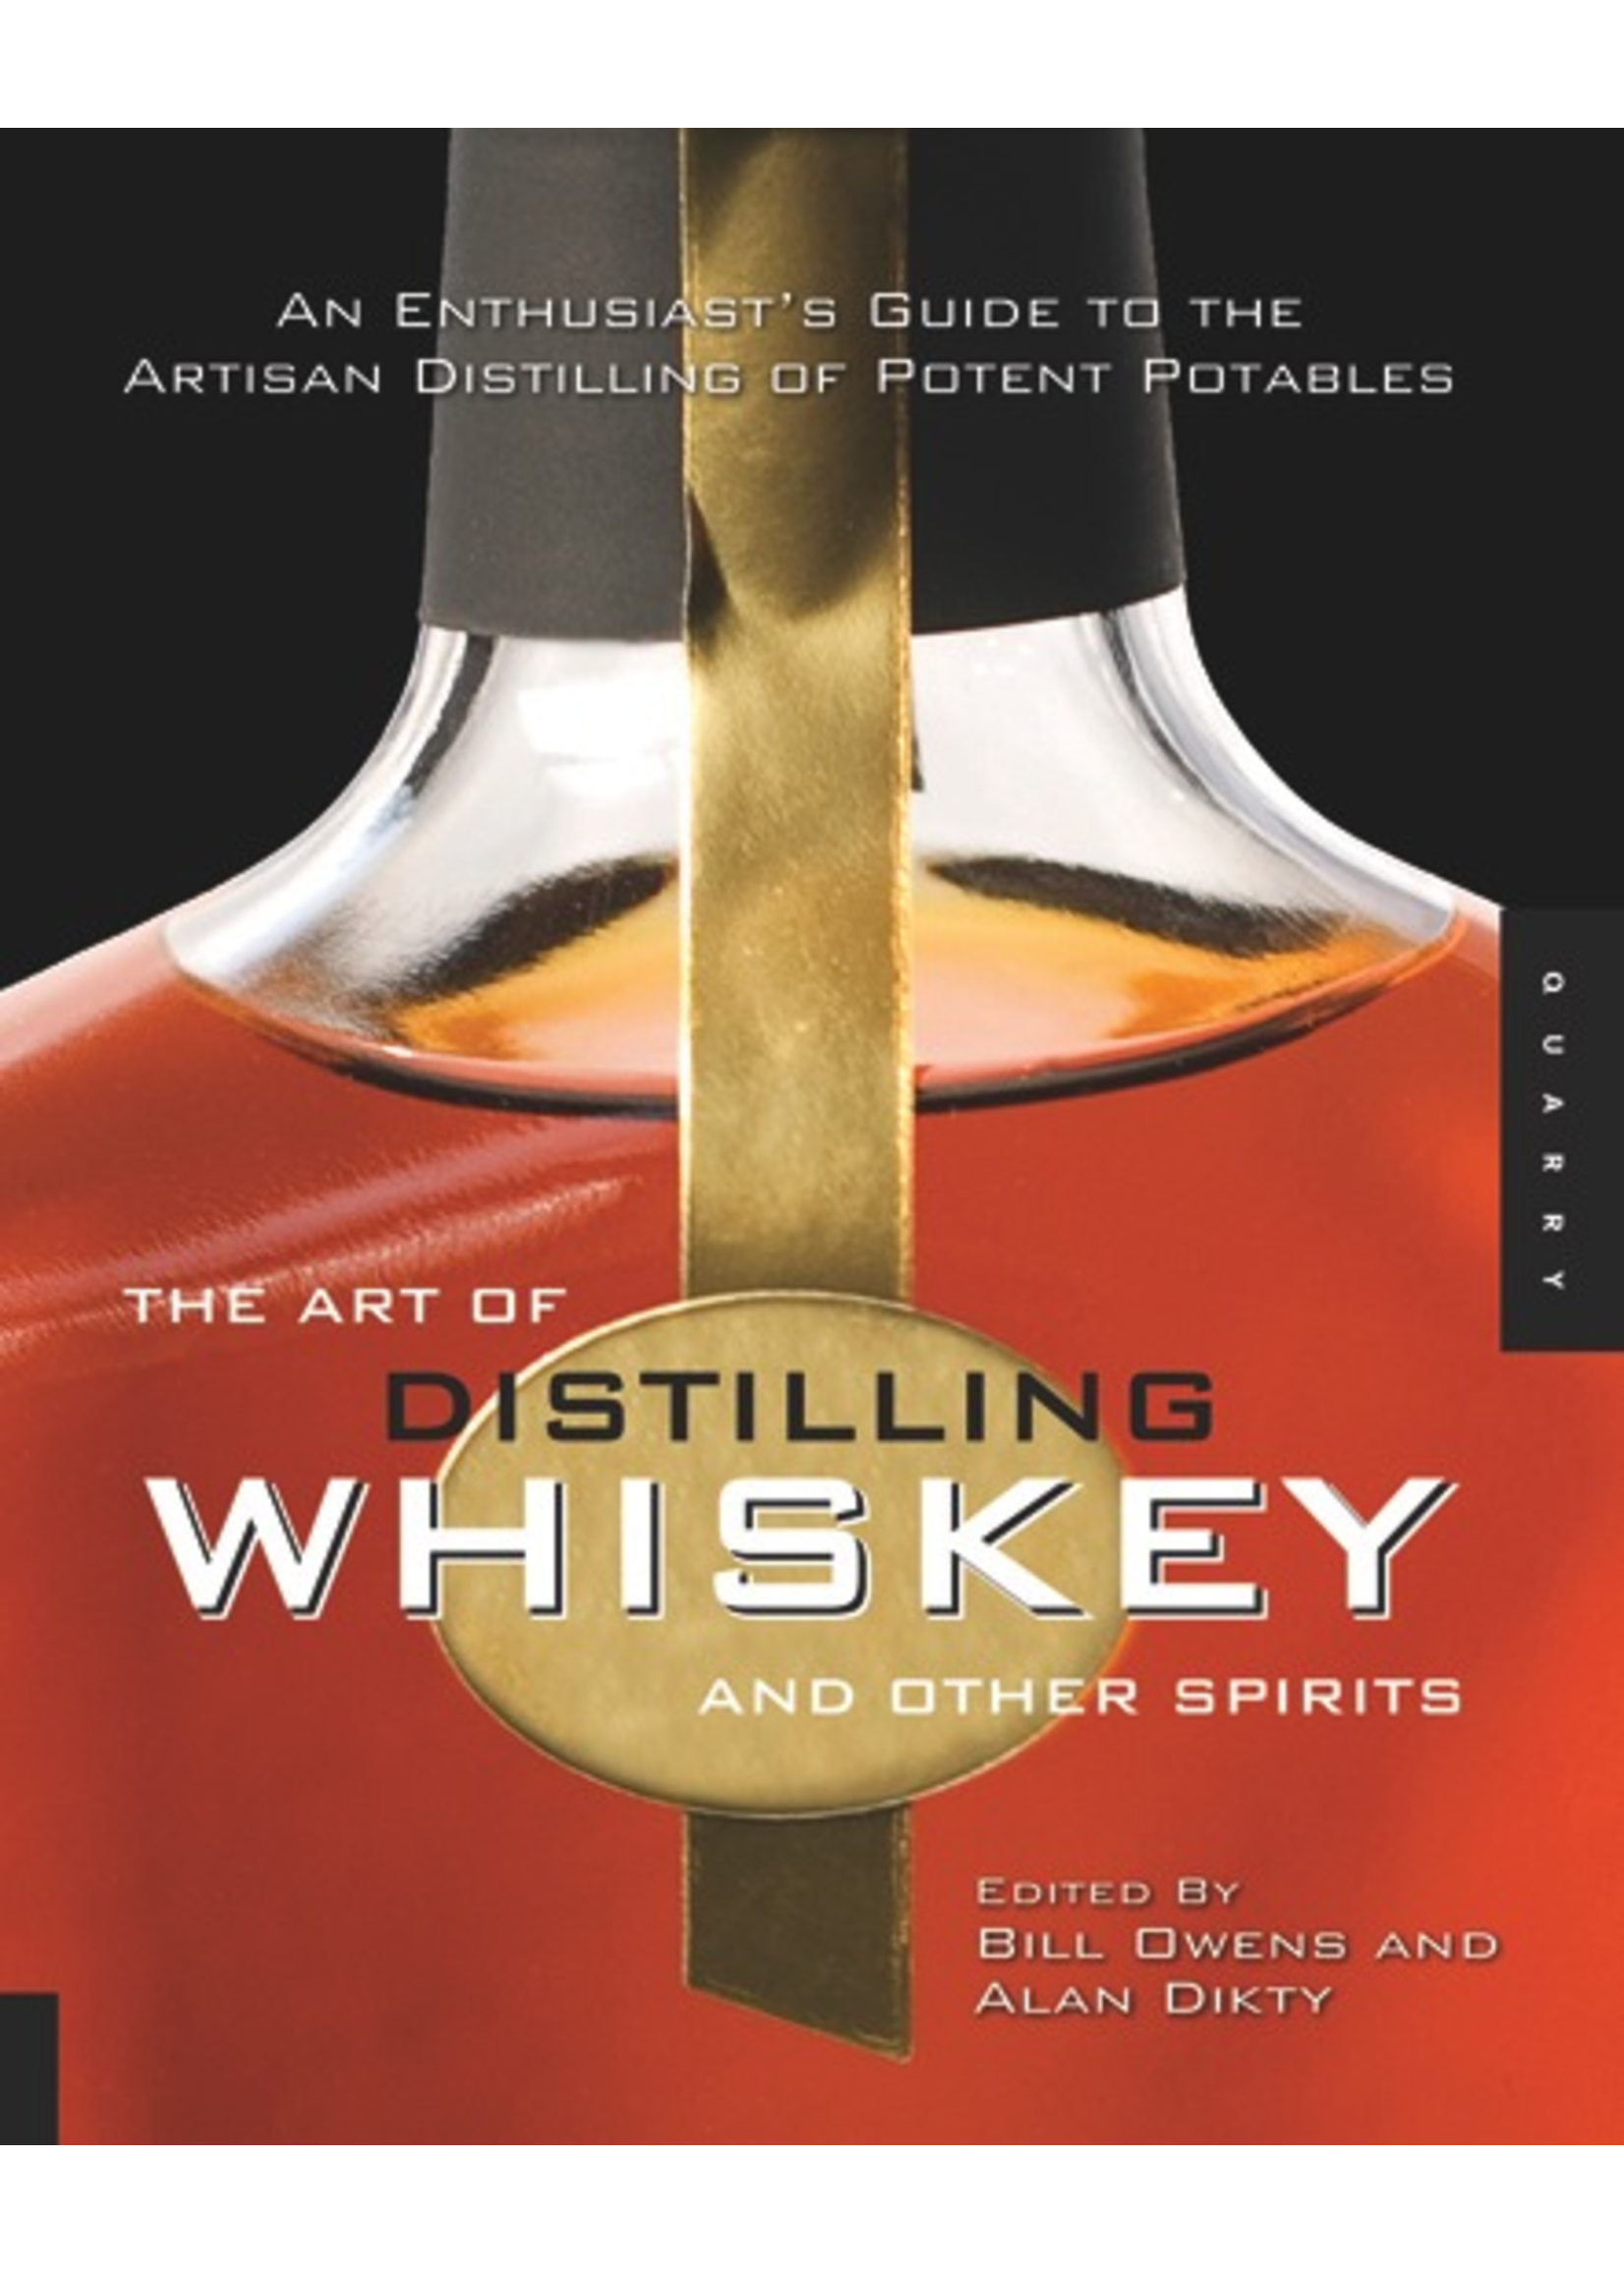 Books The Art of Distilling Whiskey and Other Spirits